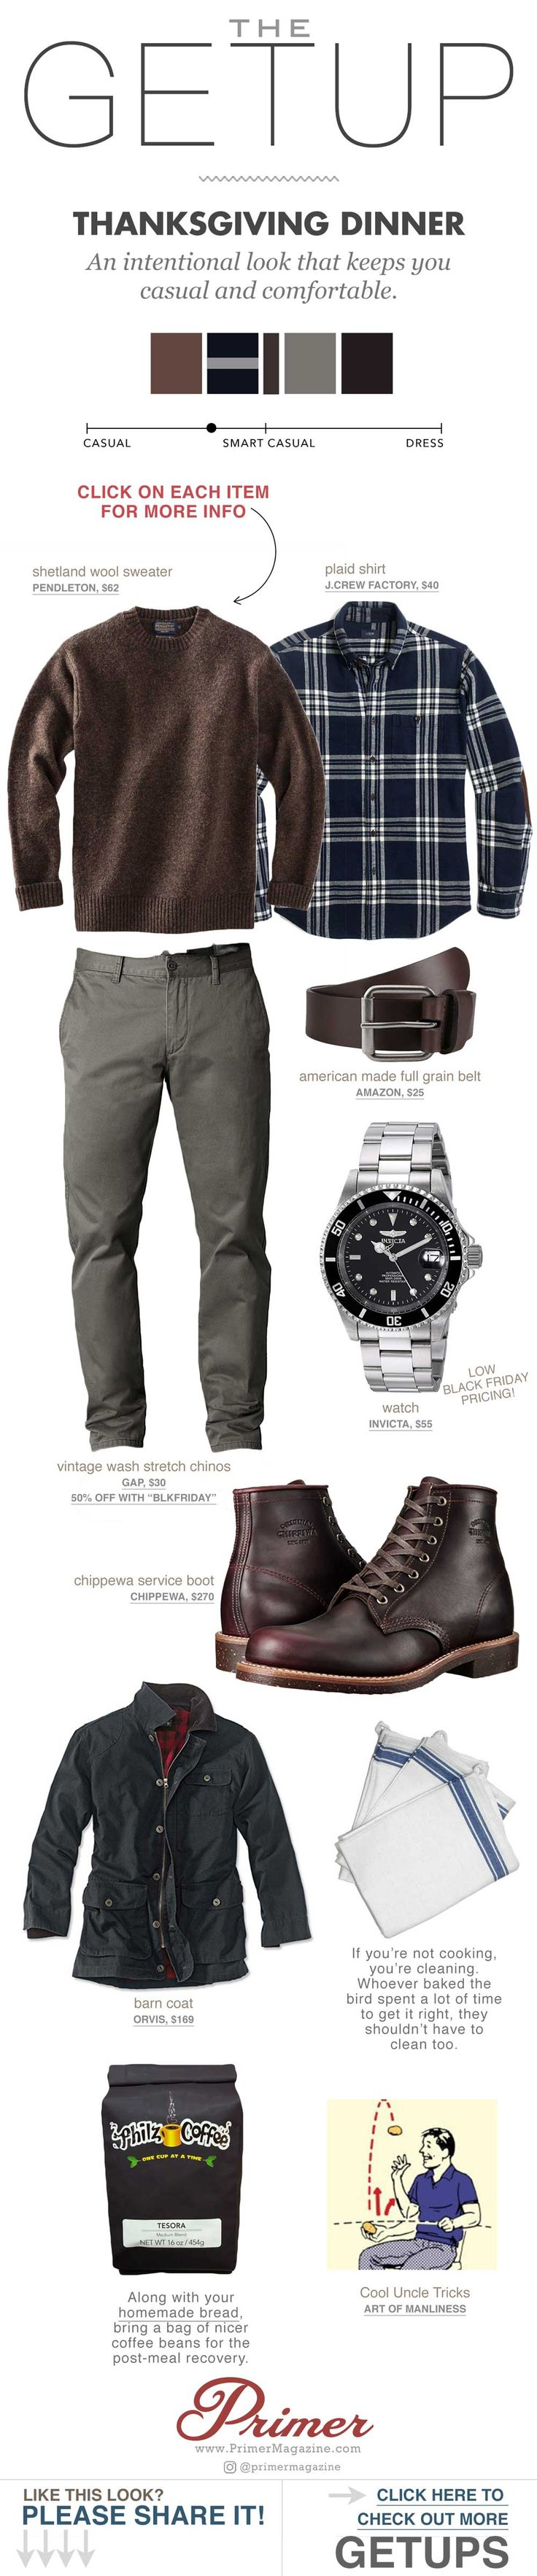 Casual, comfortable style for men. What to wear for Thanksgiving. The Getup.